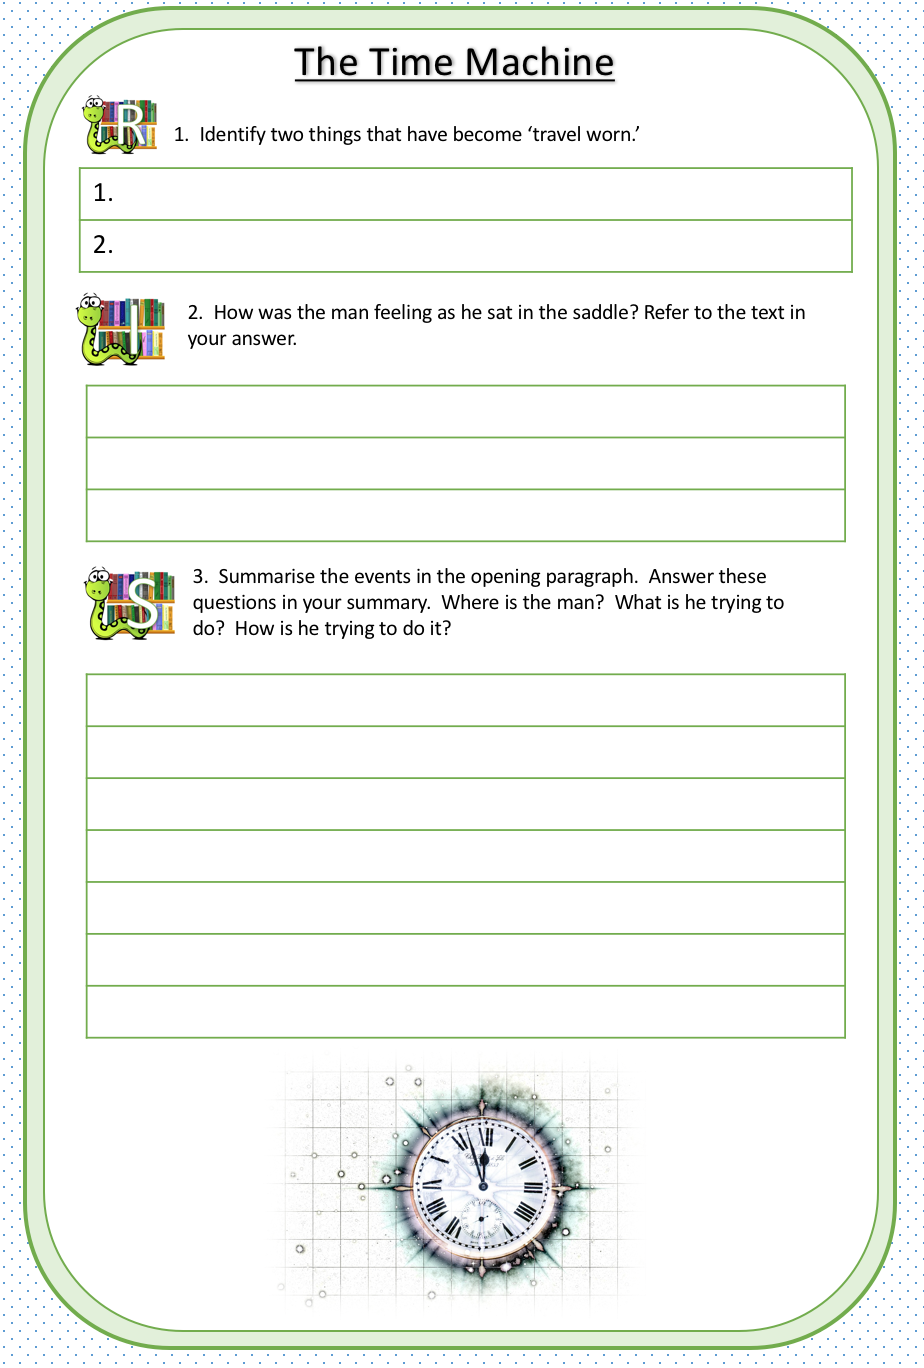 guided reading activity 14 2 answer key